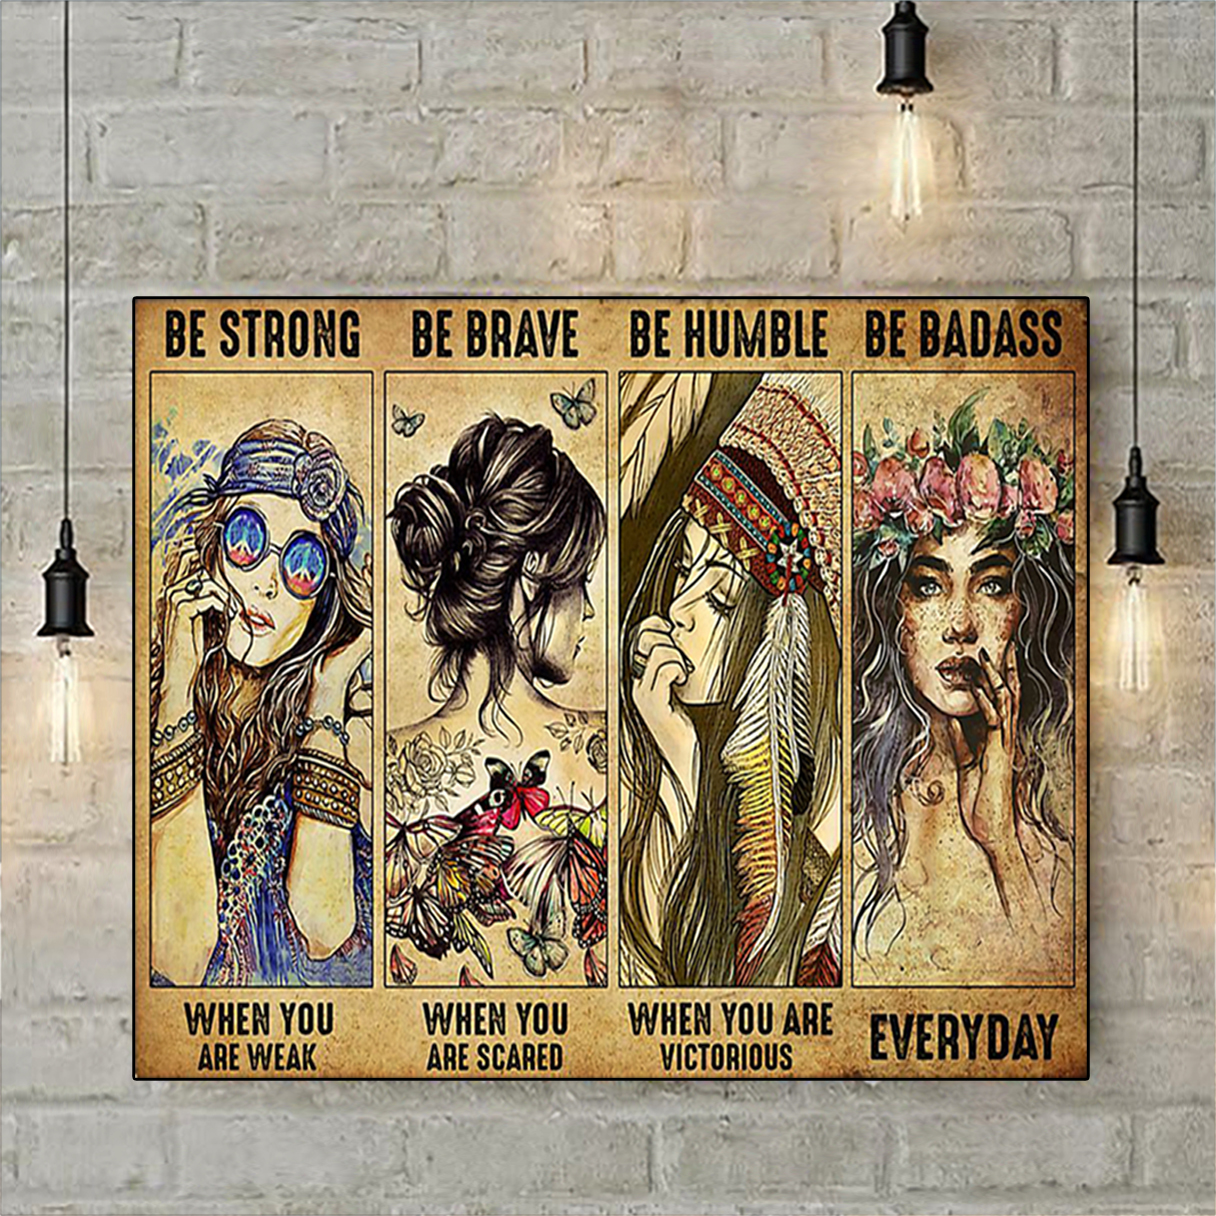 Be strong be brave be humble be badass hippie poster